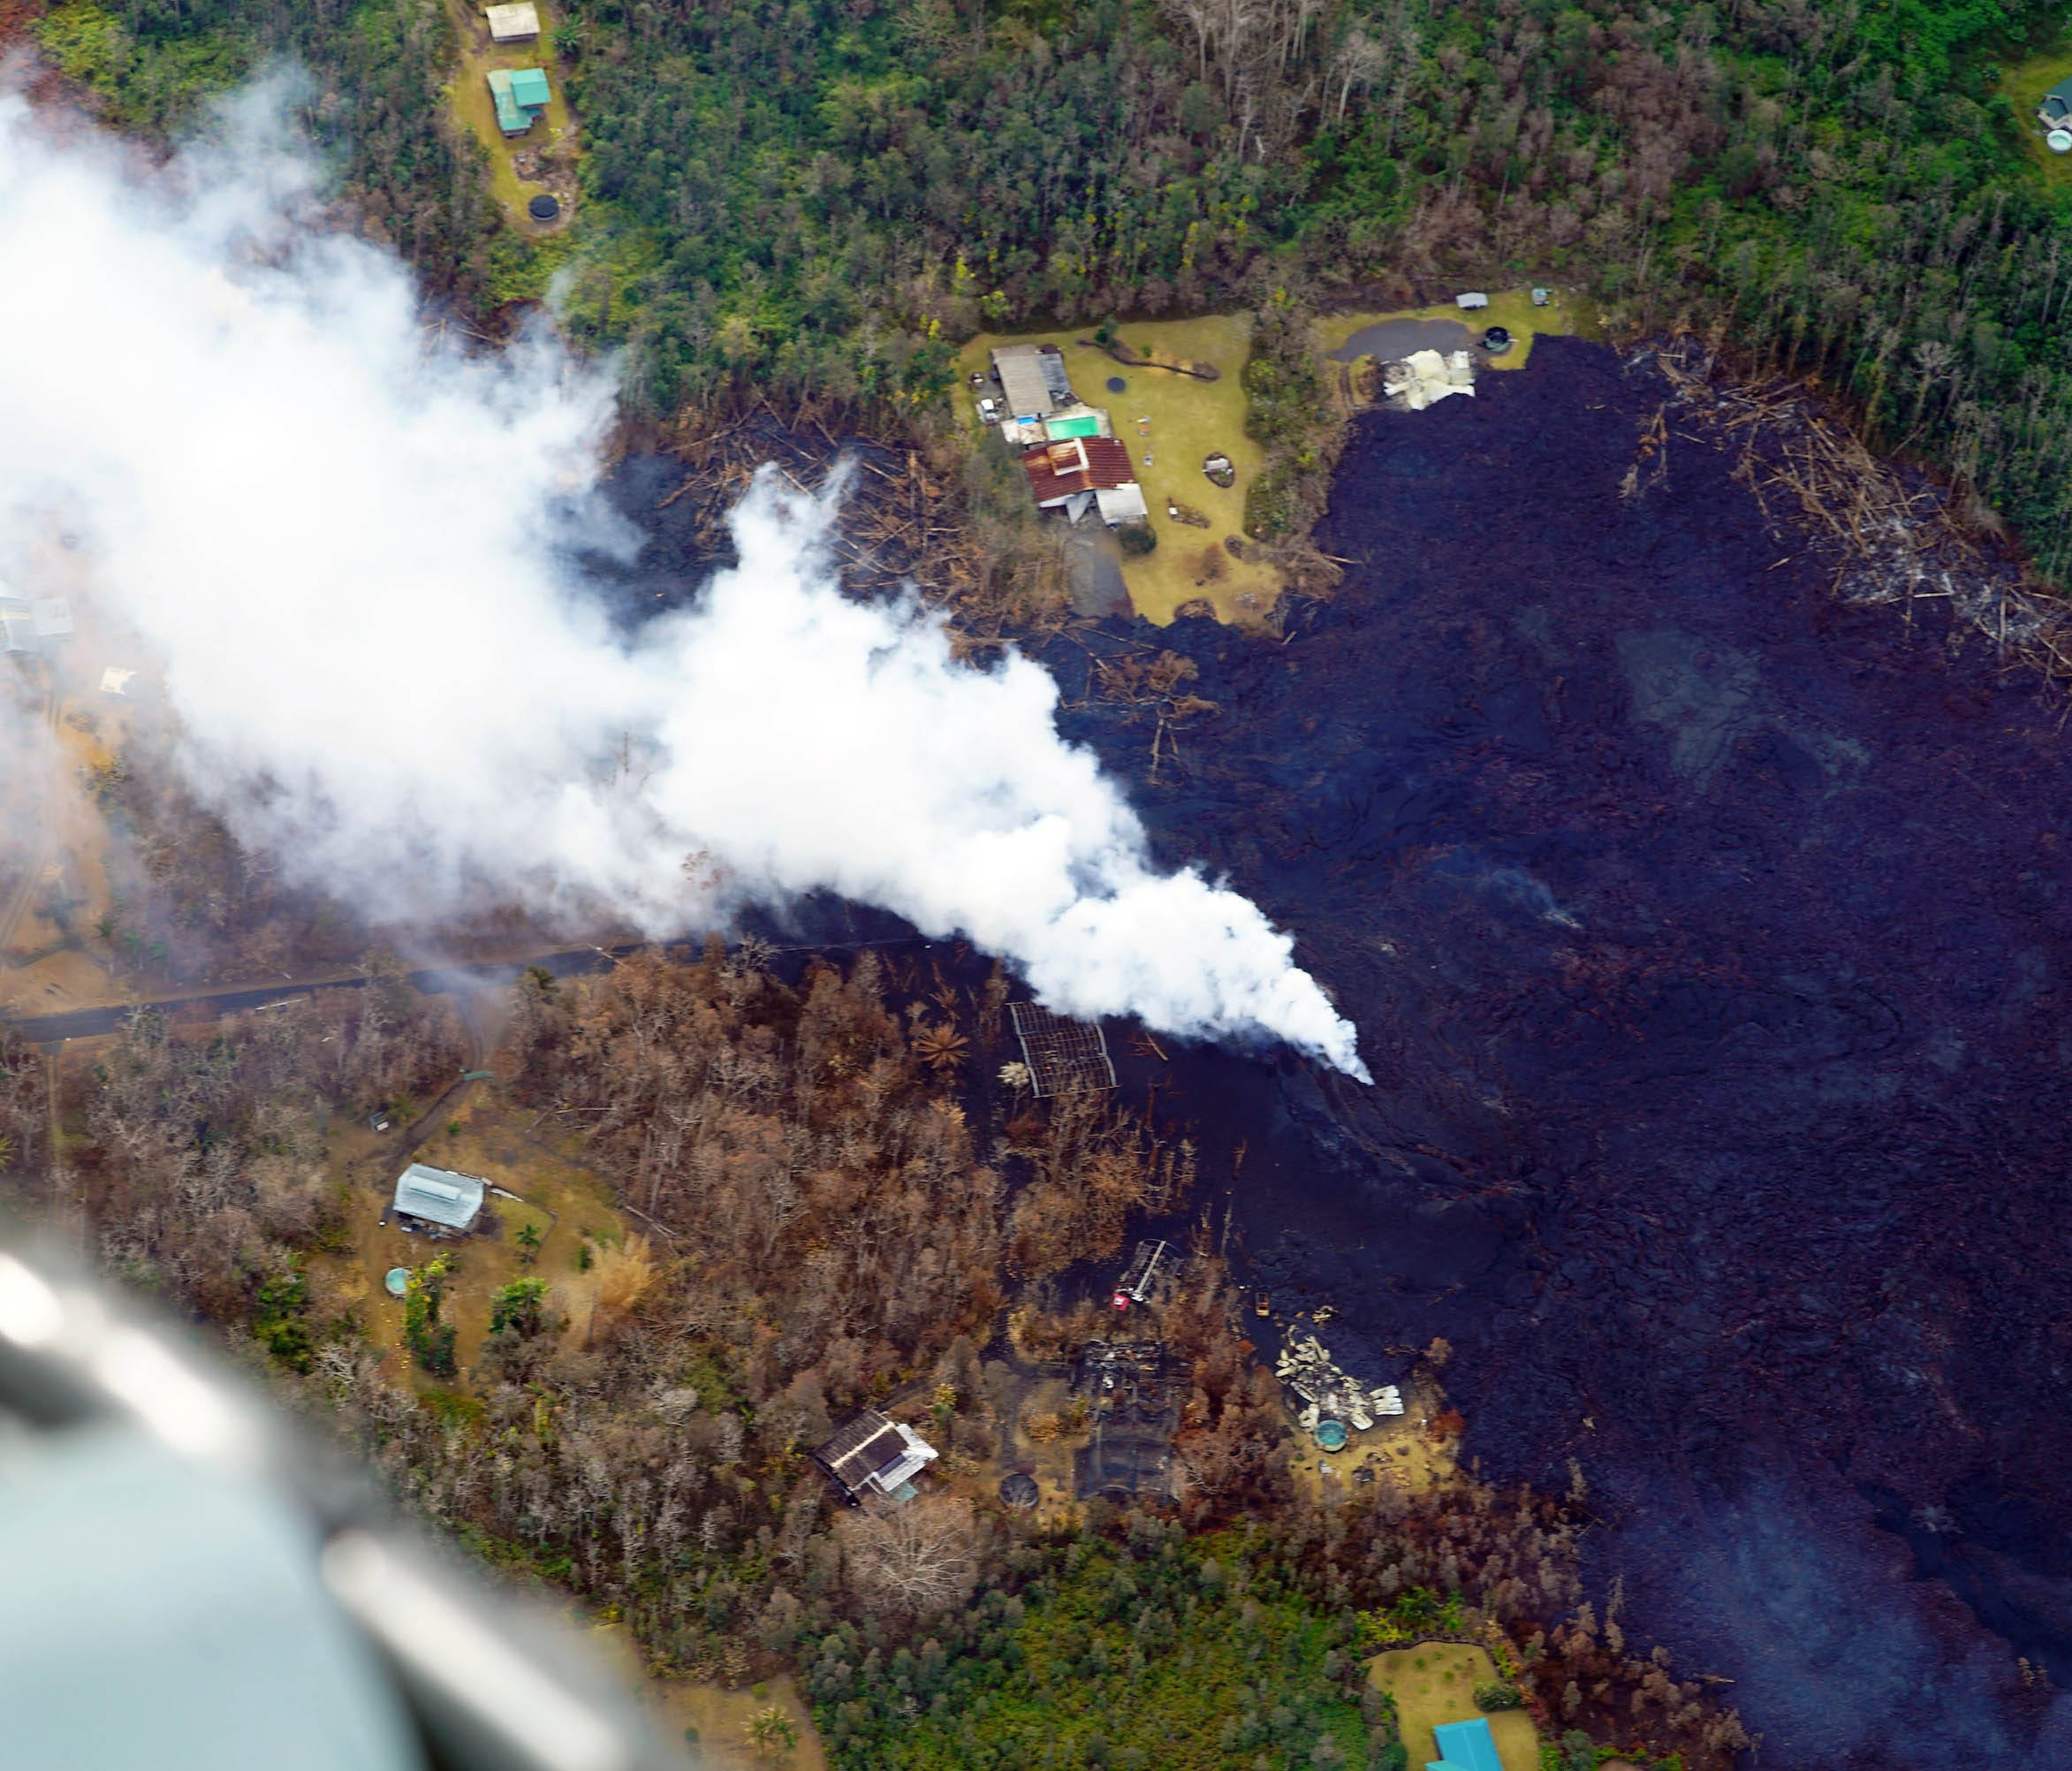 Fumes from the lava flow near the Leilani Estates neighborhood as seen on May 13, 2018, have killed surrounding vegetation.